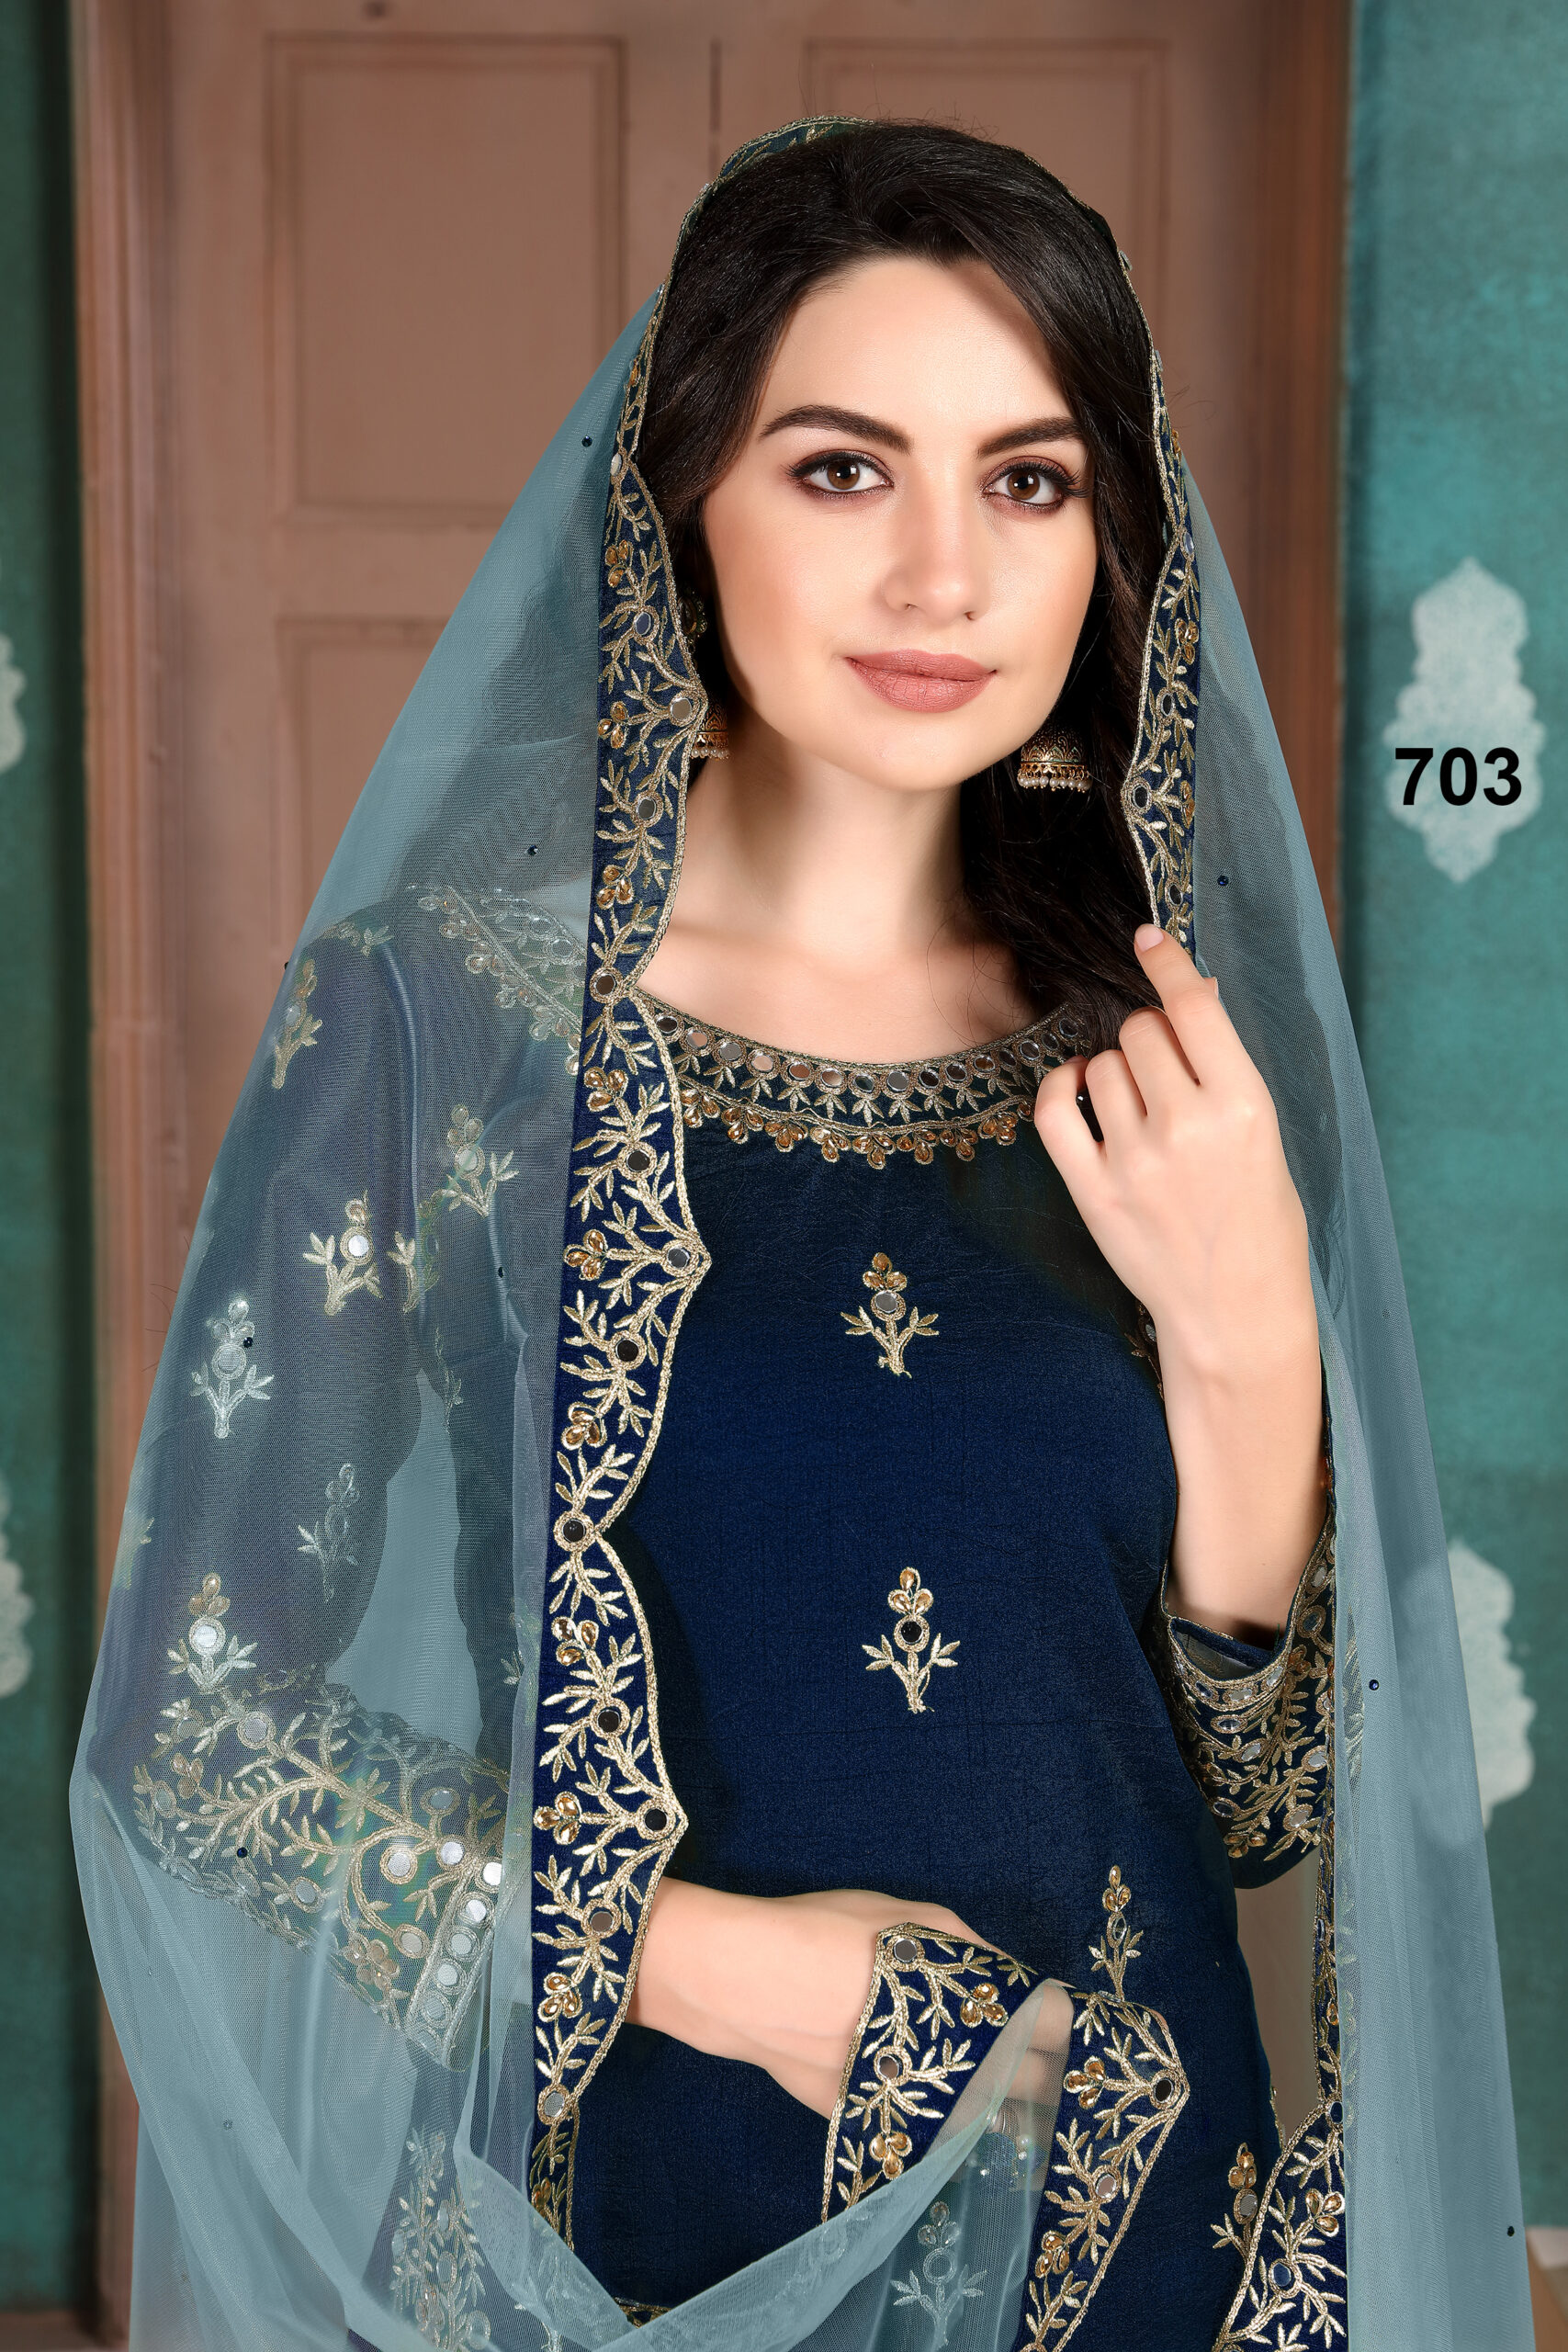 Party Wear Suits for Women